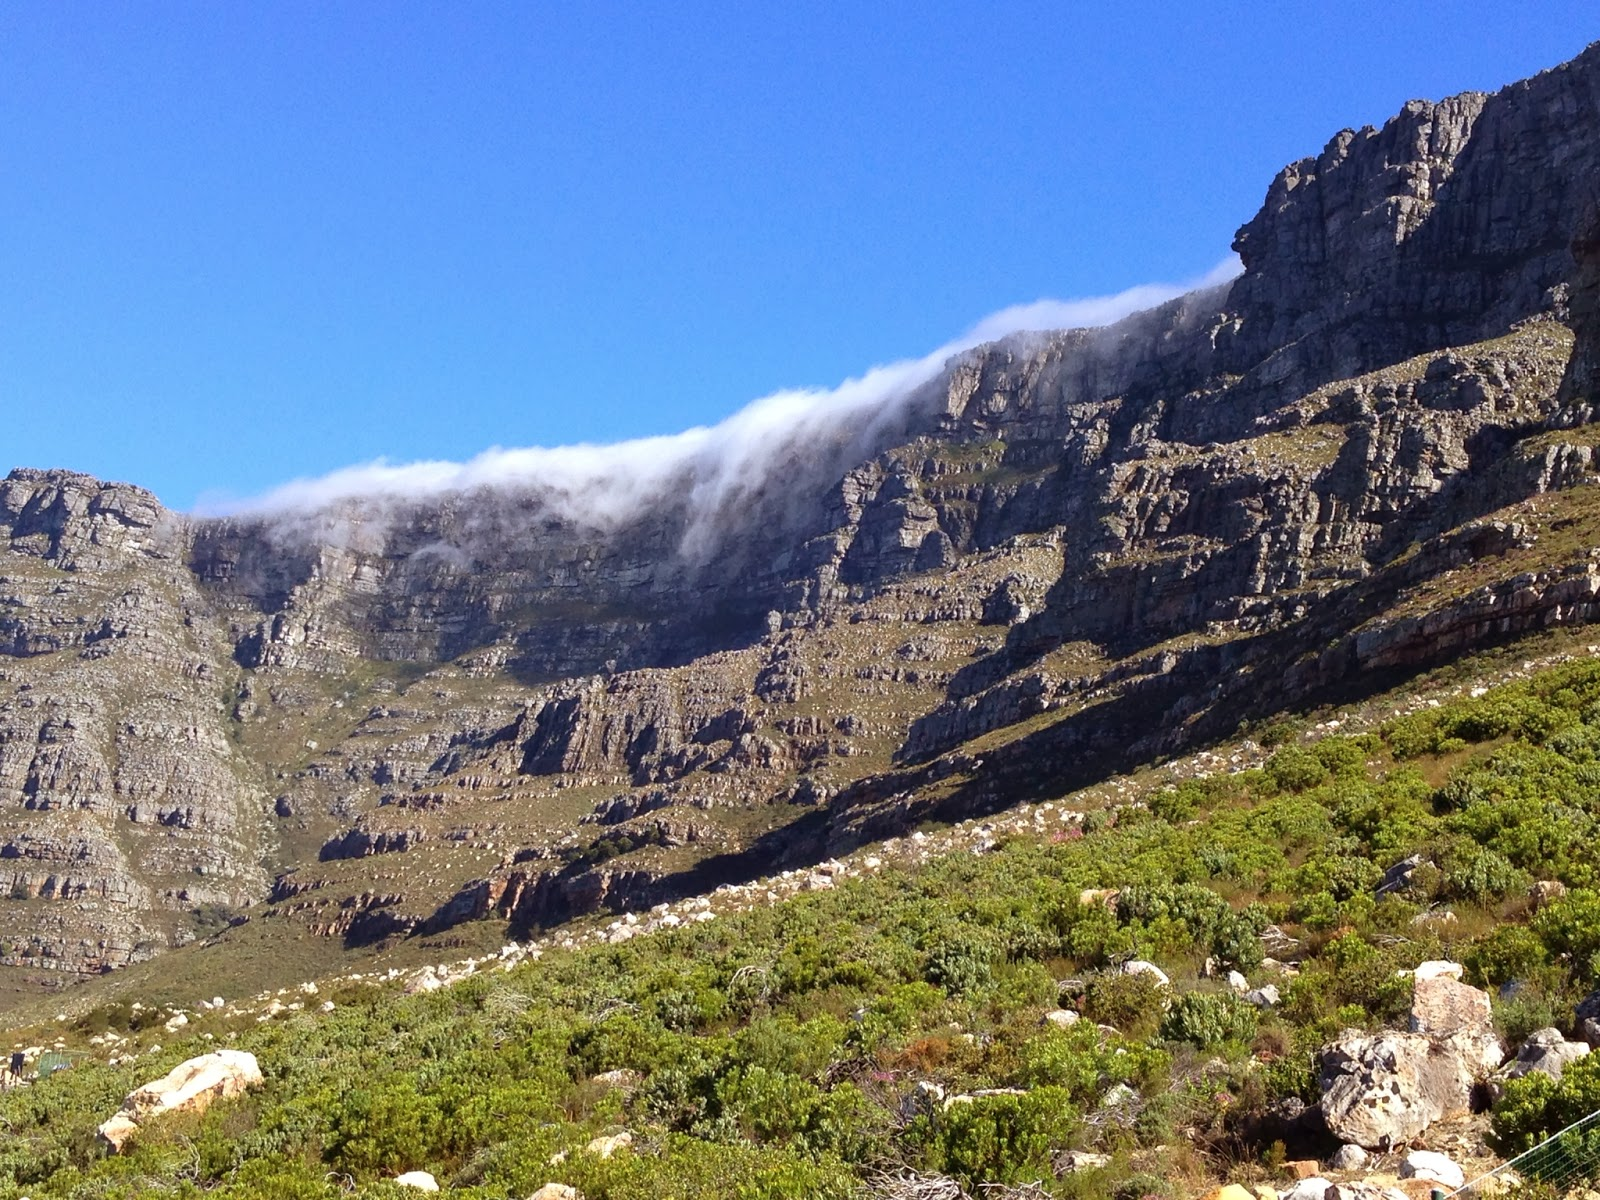 Cape Town - Heading up to Table Mountain